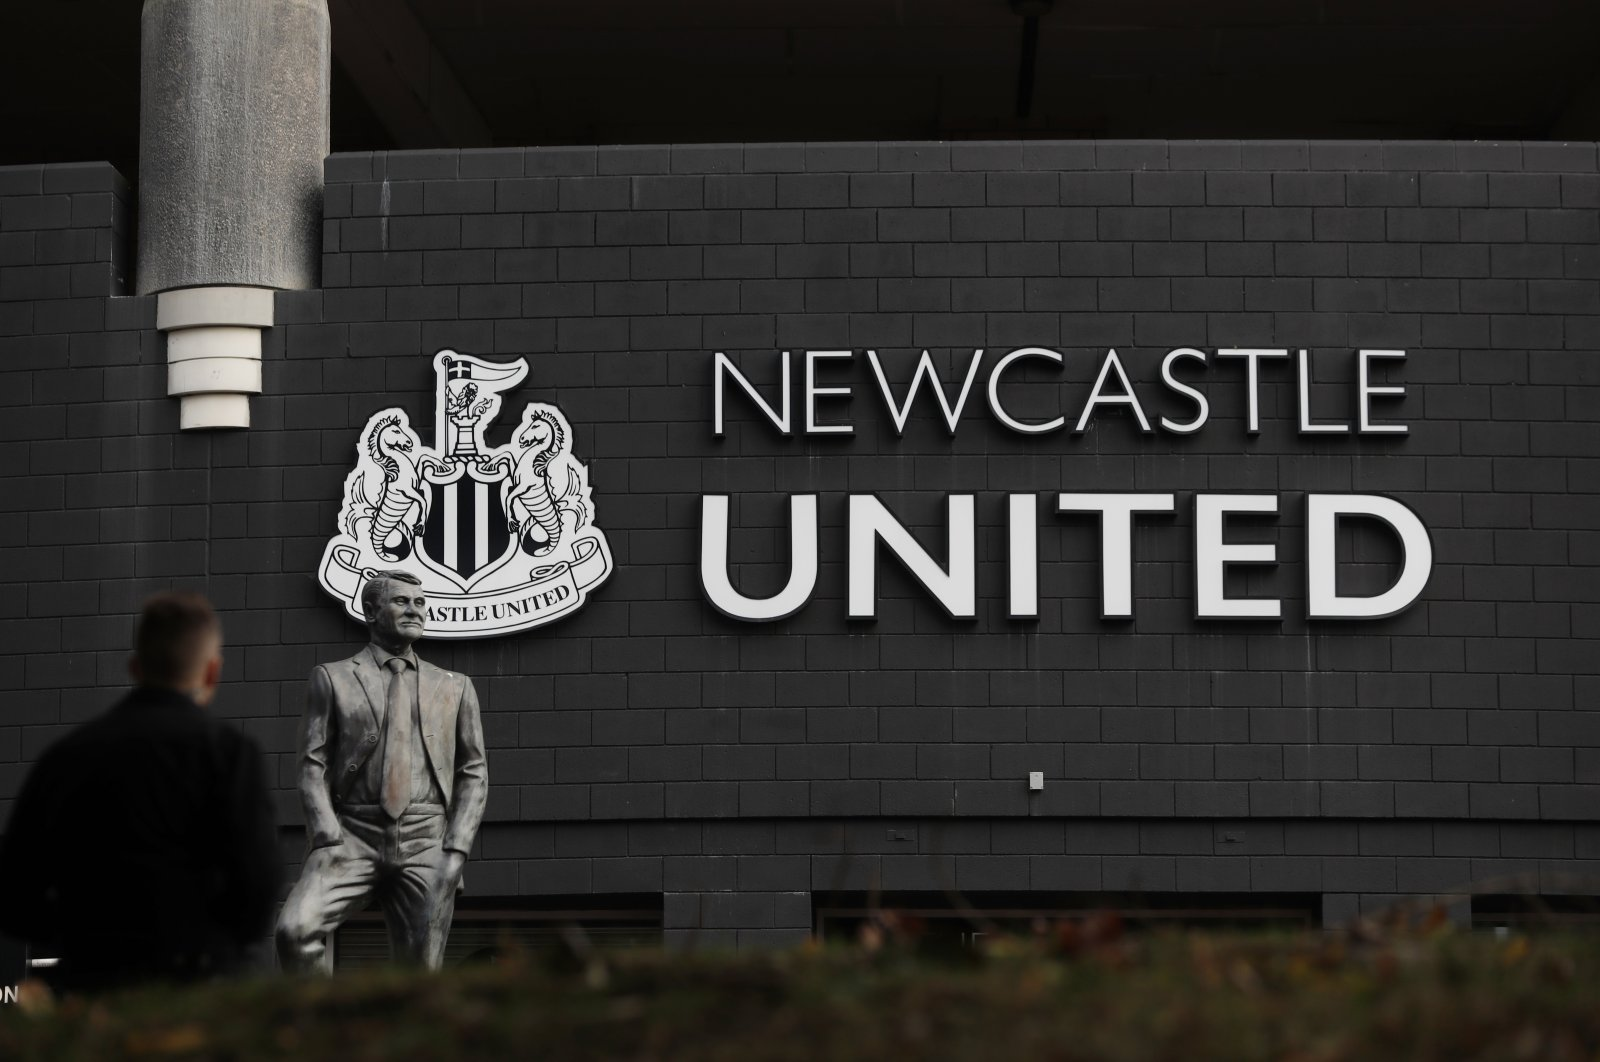 A general view outside Newcastle United's St. James' Park stadium, Newcastle, England, Oct. 7, 2021. (Reuters Photo)